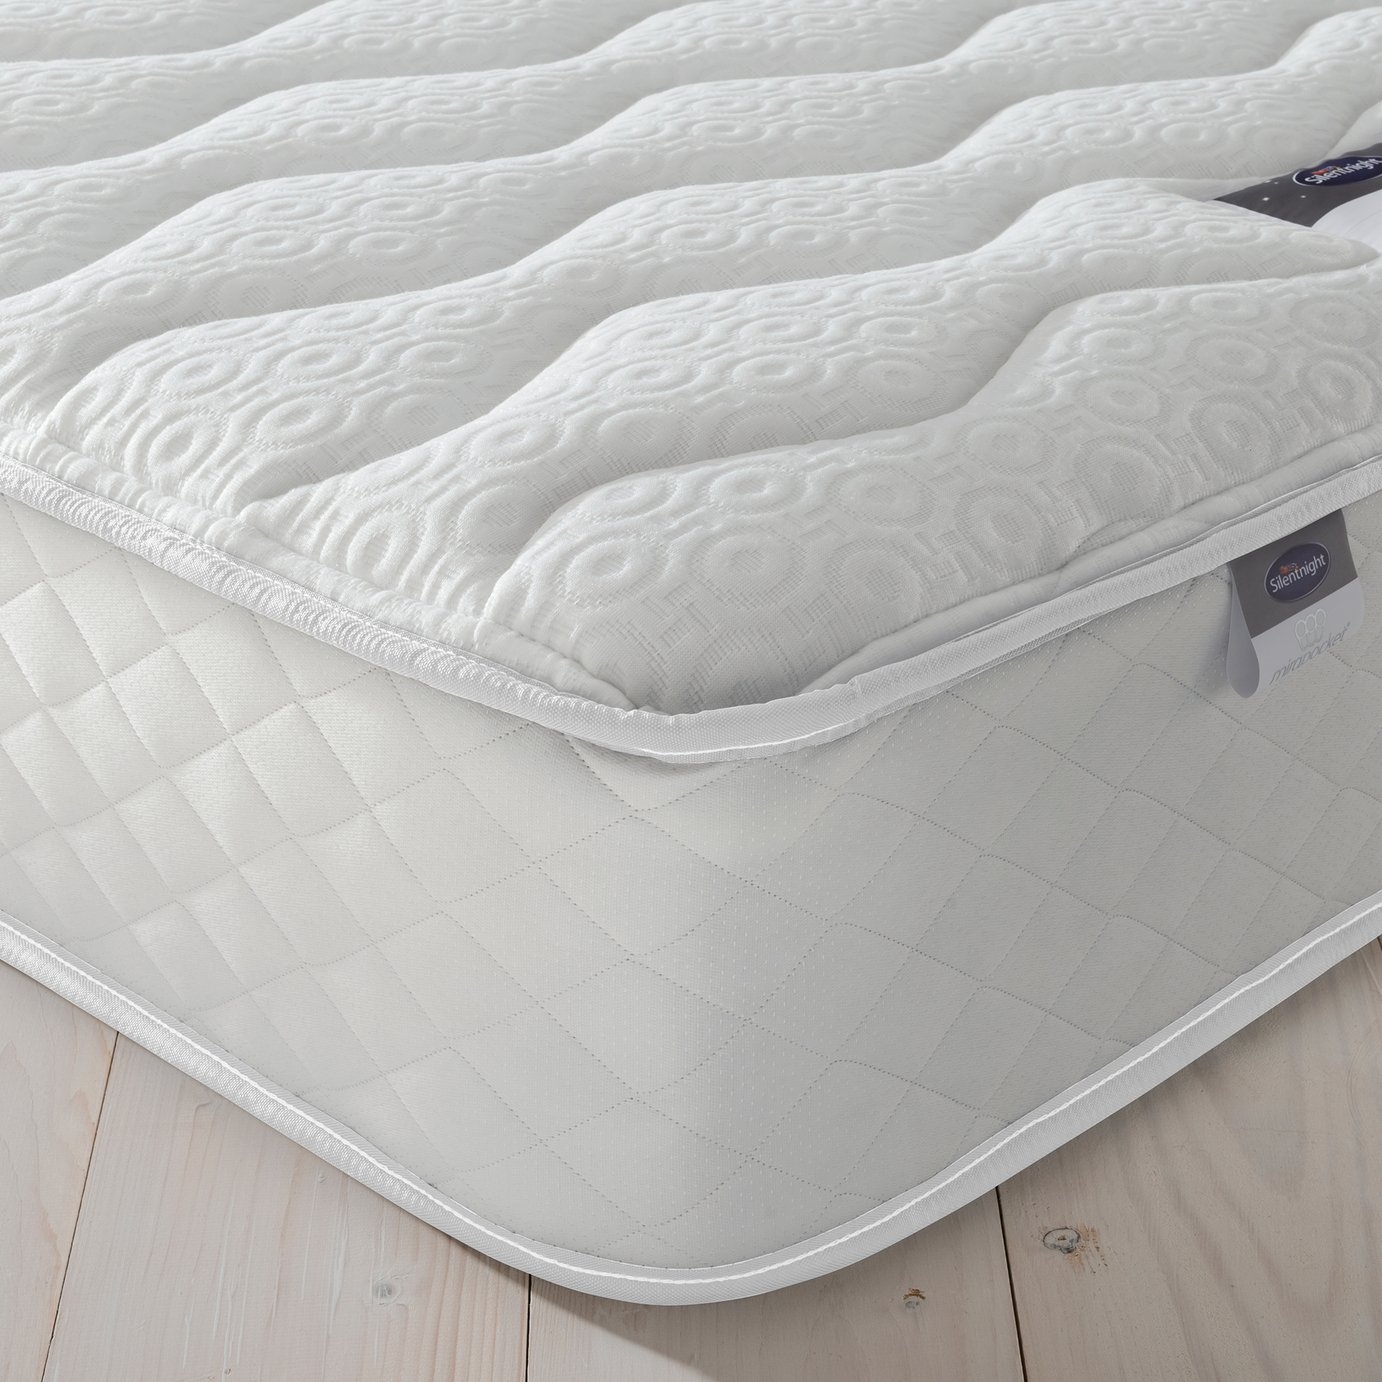 Silentnight 1000 Pocket Luxury Double Mattress